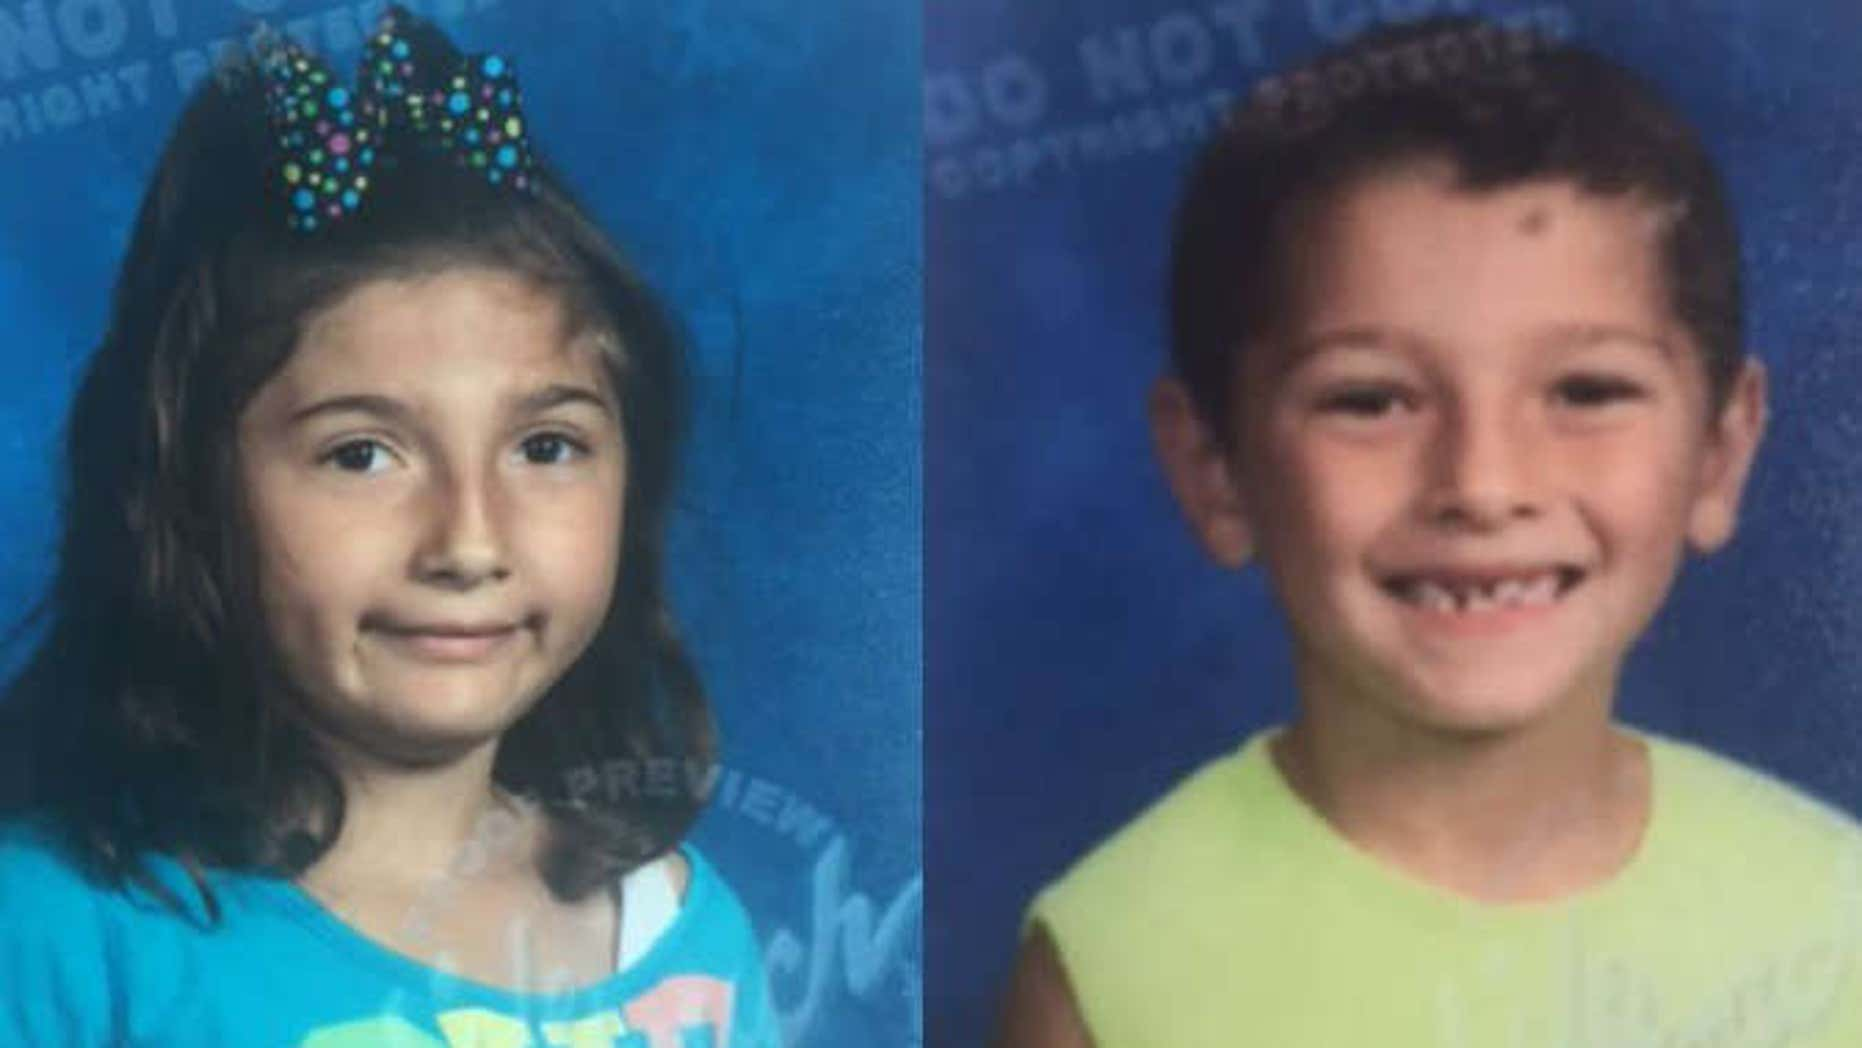 Lillana Hernandez, 7, and Rene Pasztor, 6.